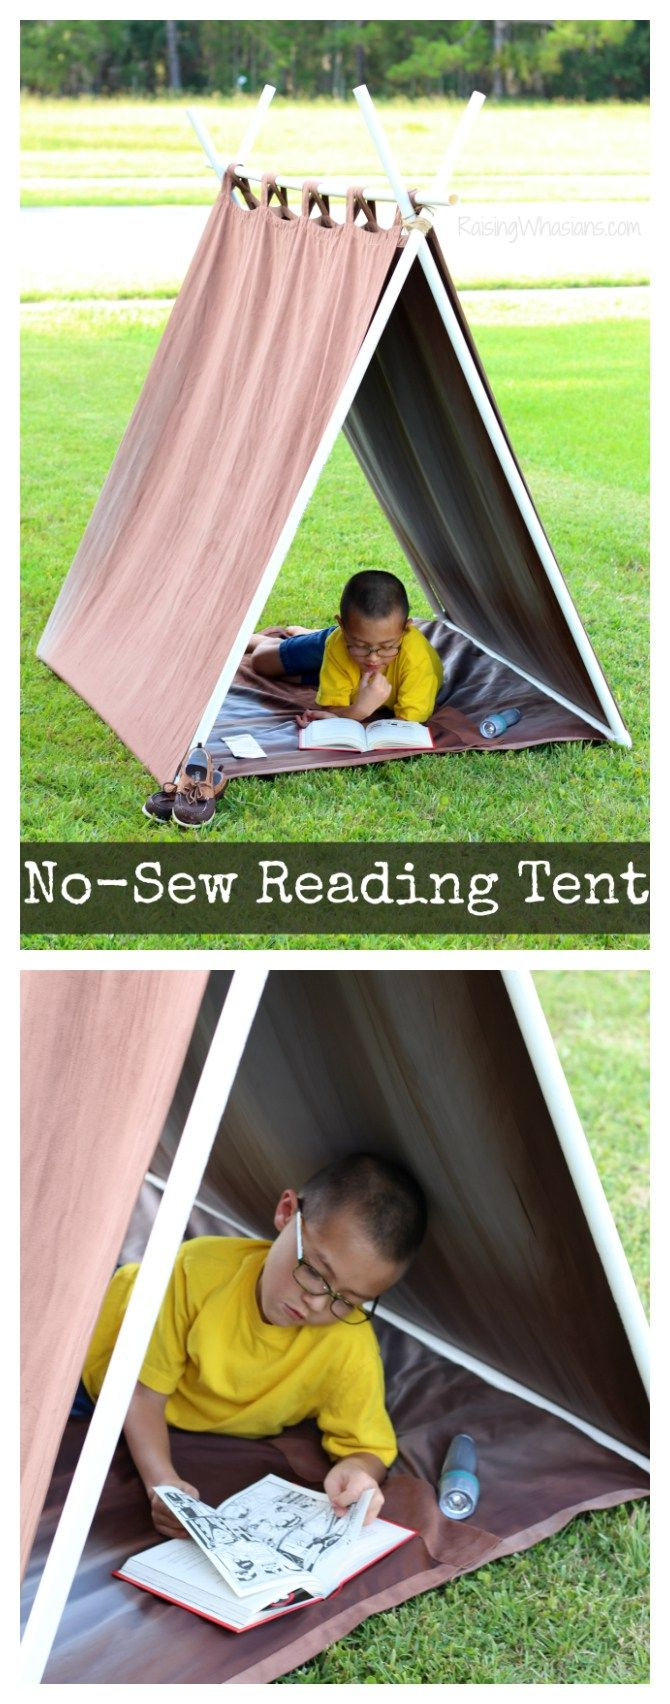 DIY No-Sew Reading Tent for Kids | Teepee inspired tent perfect for summer  sc 1 st  Pinterest & No-Sew Reading Tent for Kids + $50 Zenni Optical Giveaway ...